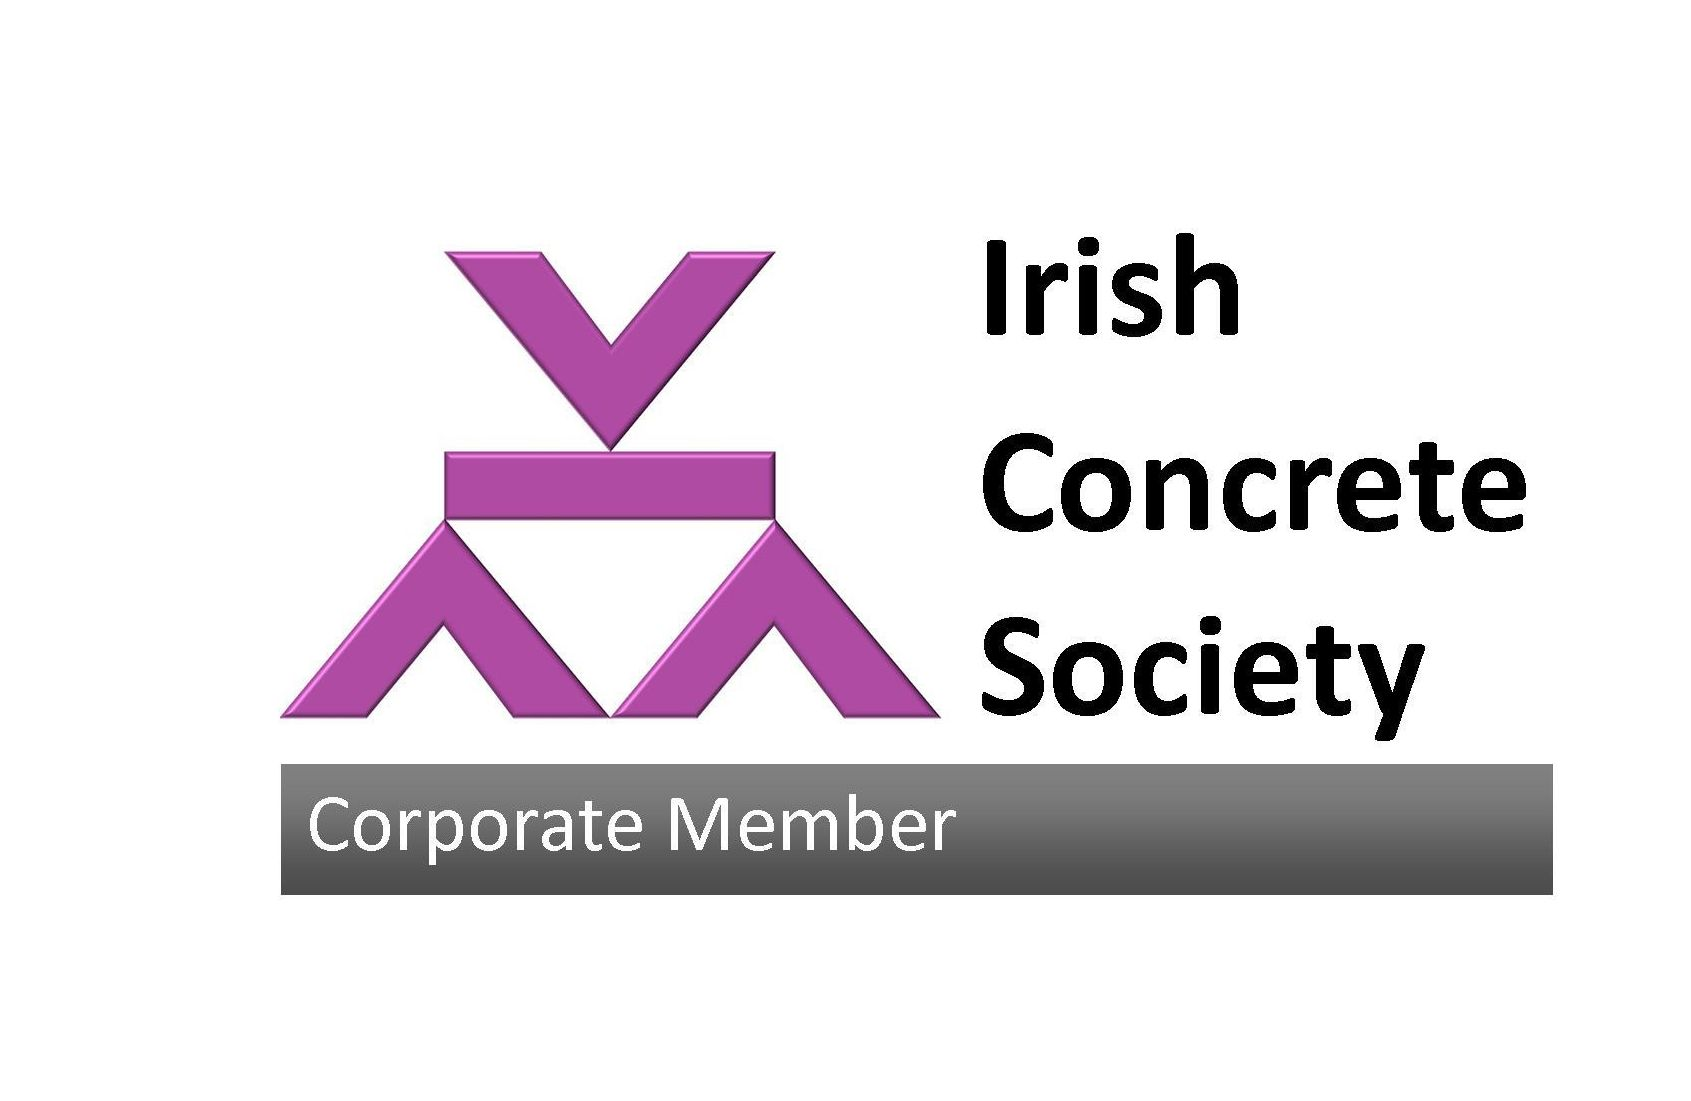 irish concrete society